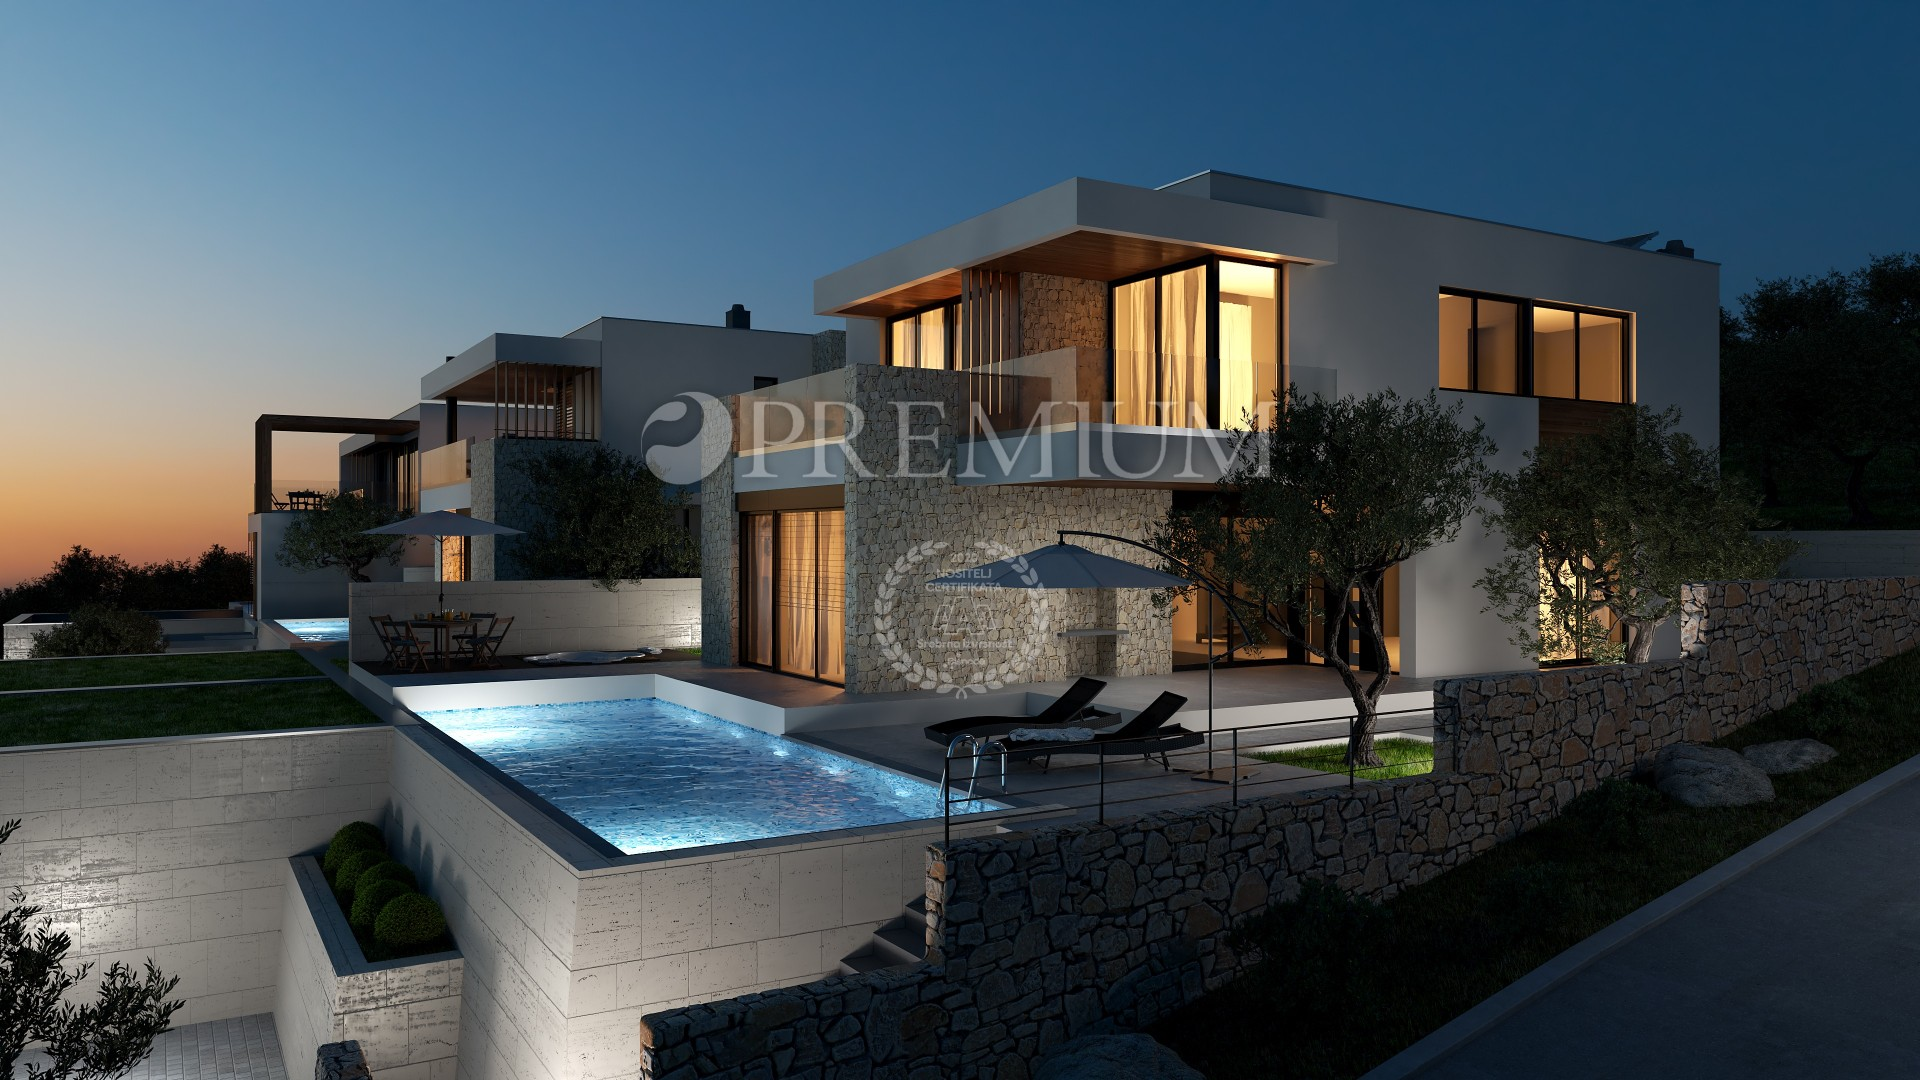 Crikvenica surroundings, for sale exclusive villa of 267m2 with swimming pool in a quiet location!